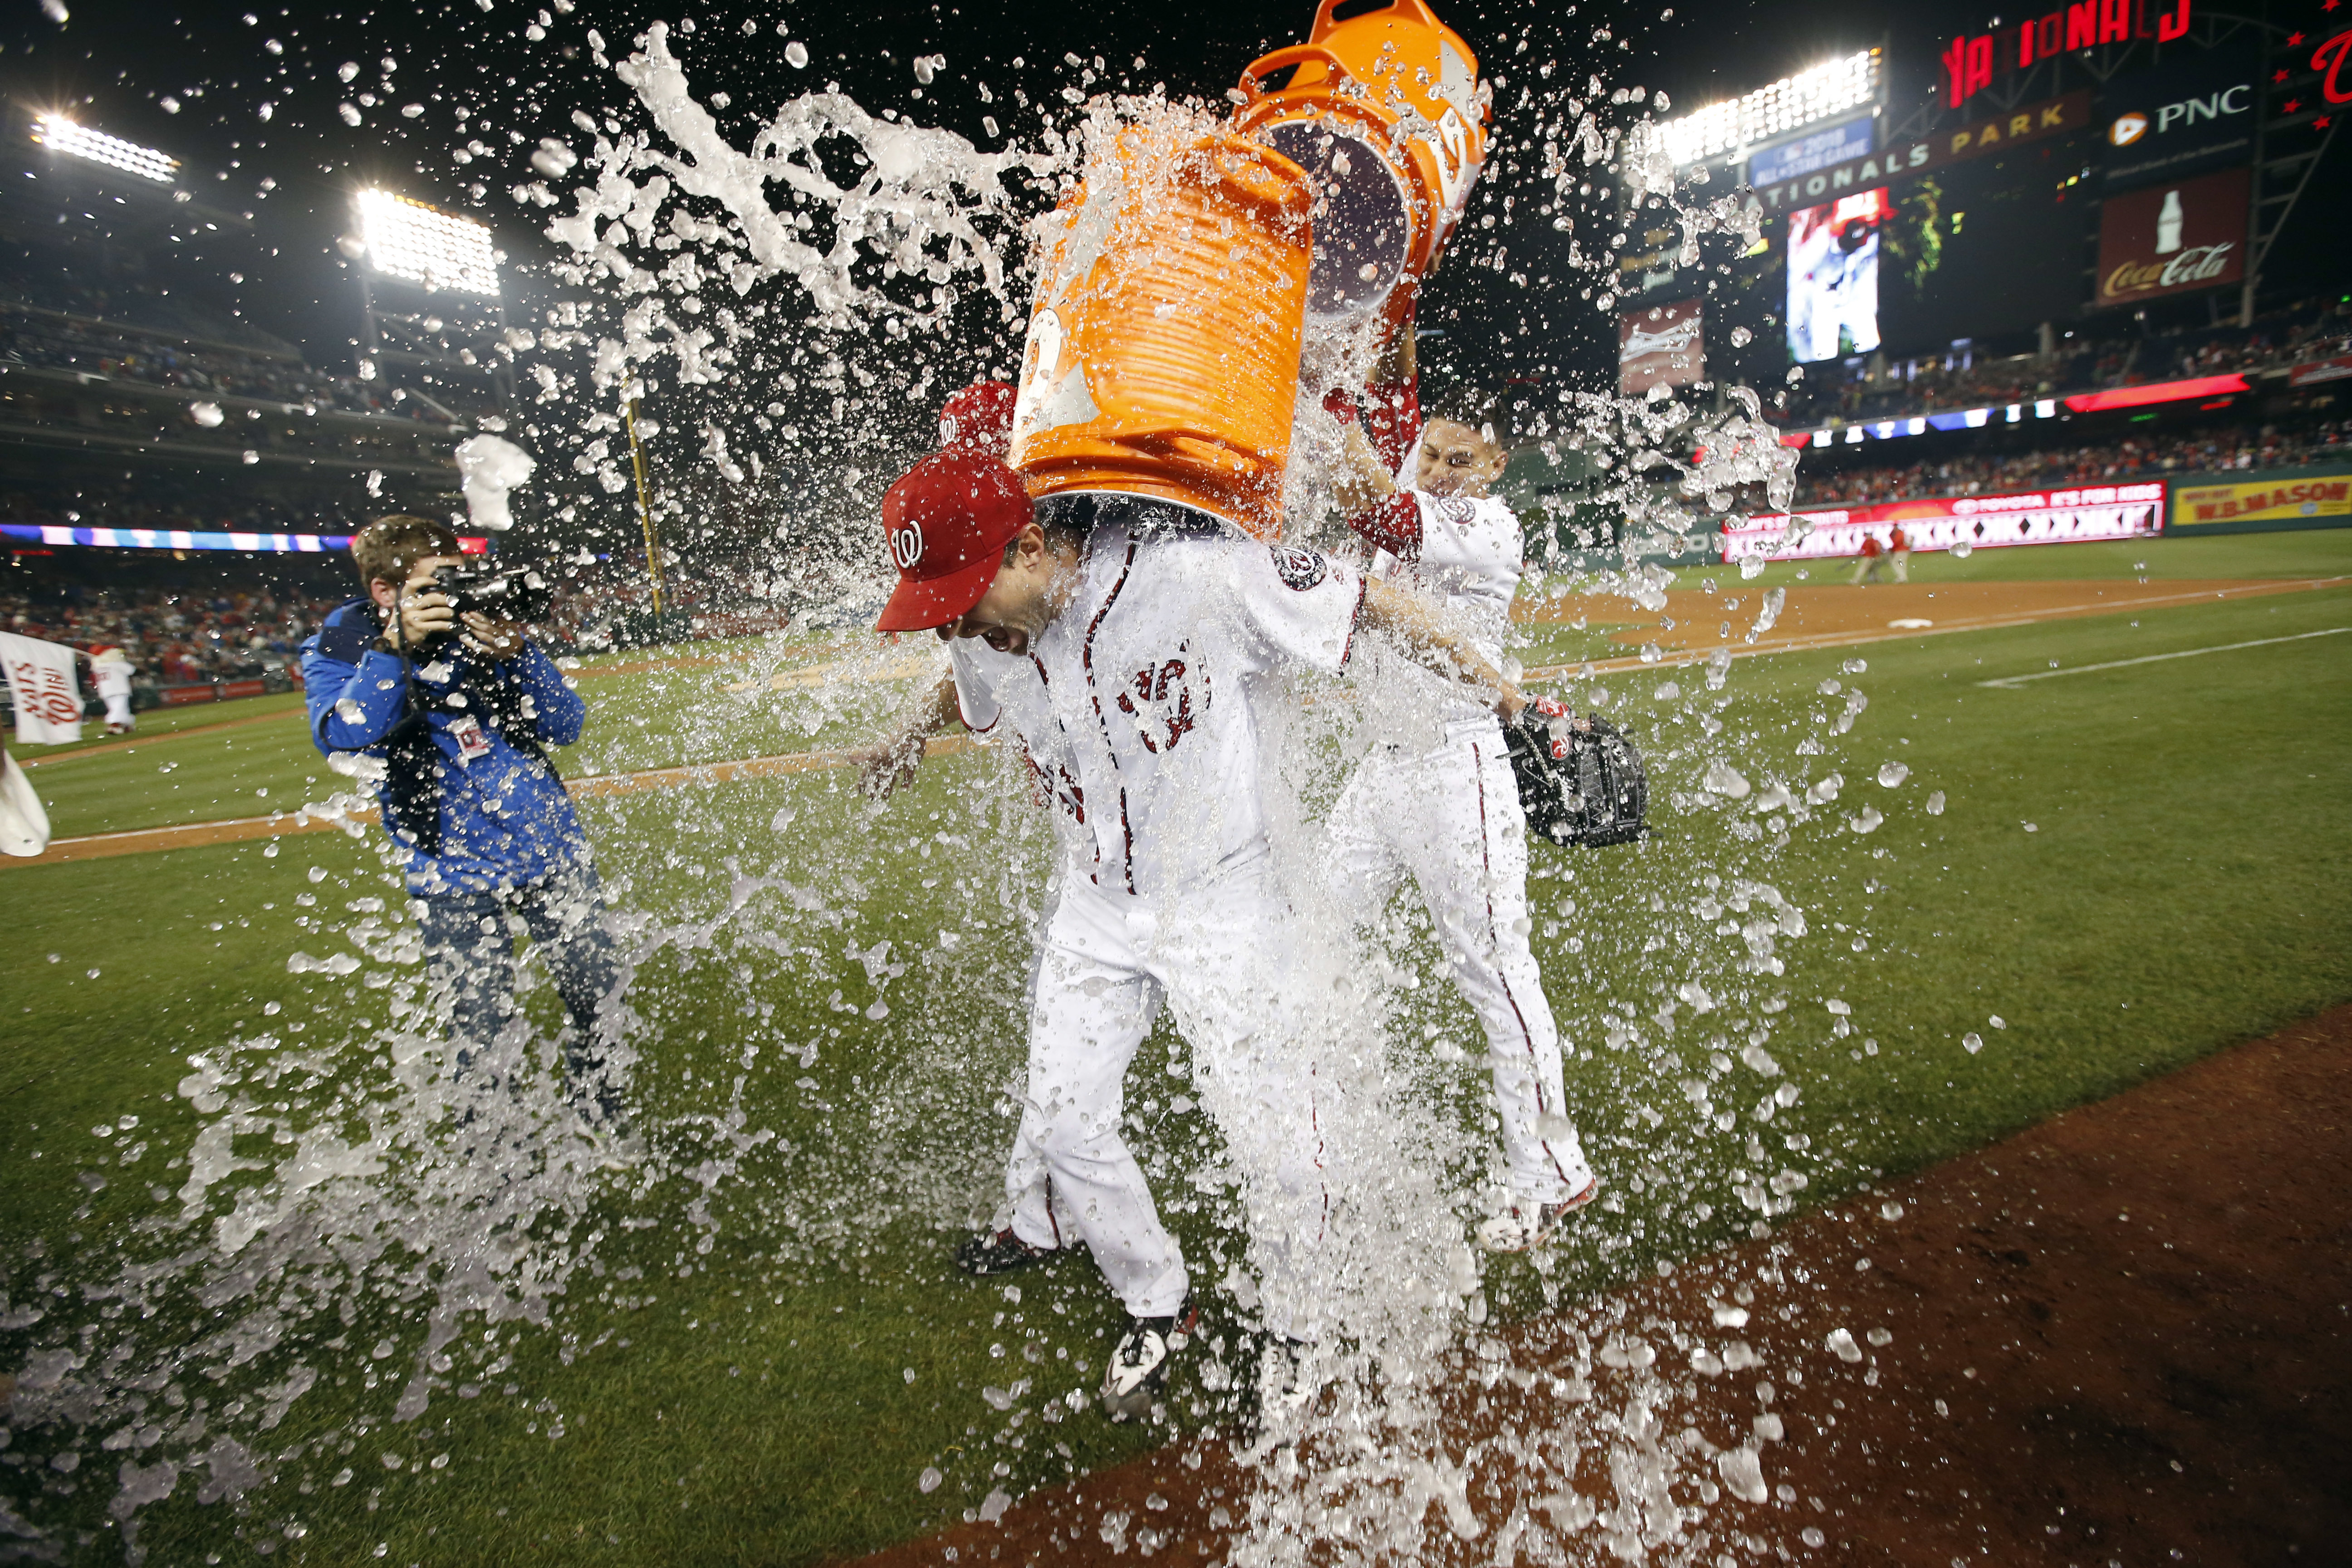 Washington Nationals starting pitcher Max Scherzer is doused after the team's baseball game against the Detroit Tigers at Nationals Park, Wednesday, May 11, 2016, in Washington. Scherzer struck out 20 batters, tying the major league nine-inning record. Th